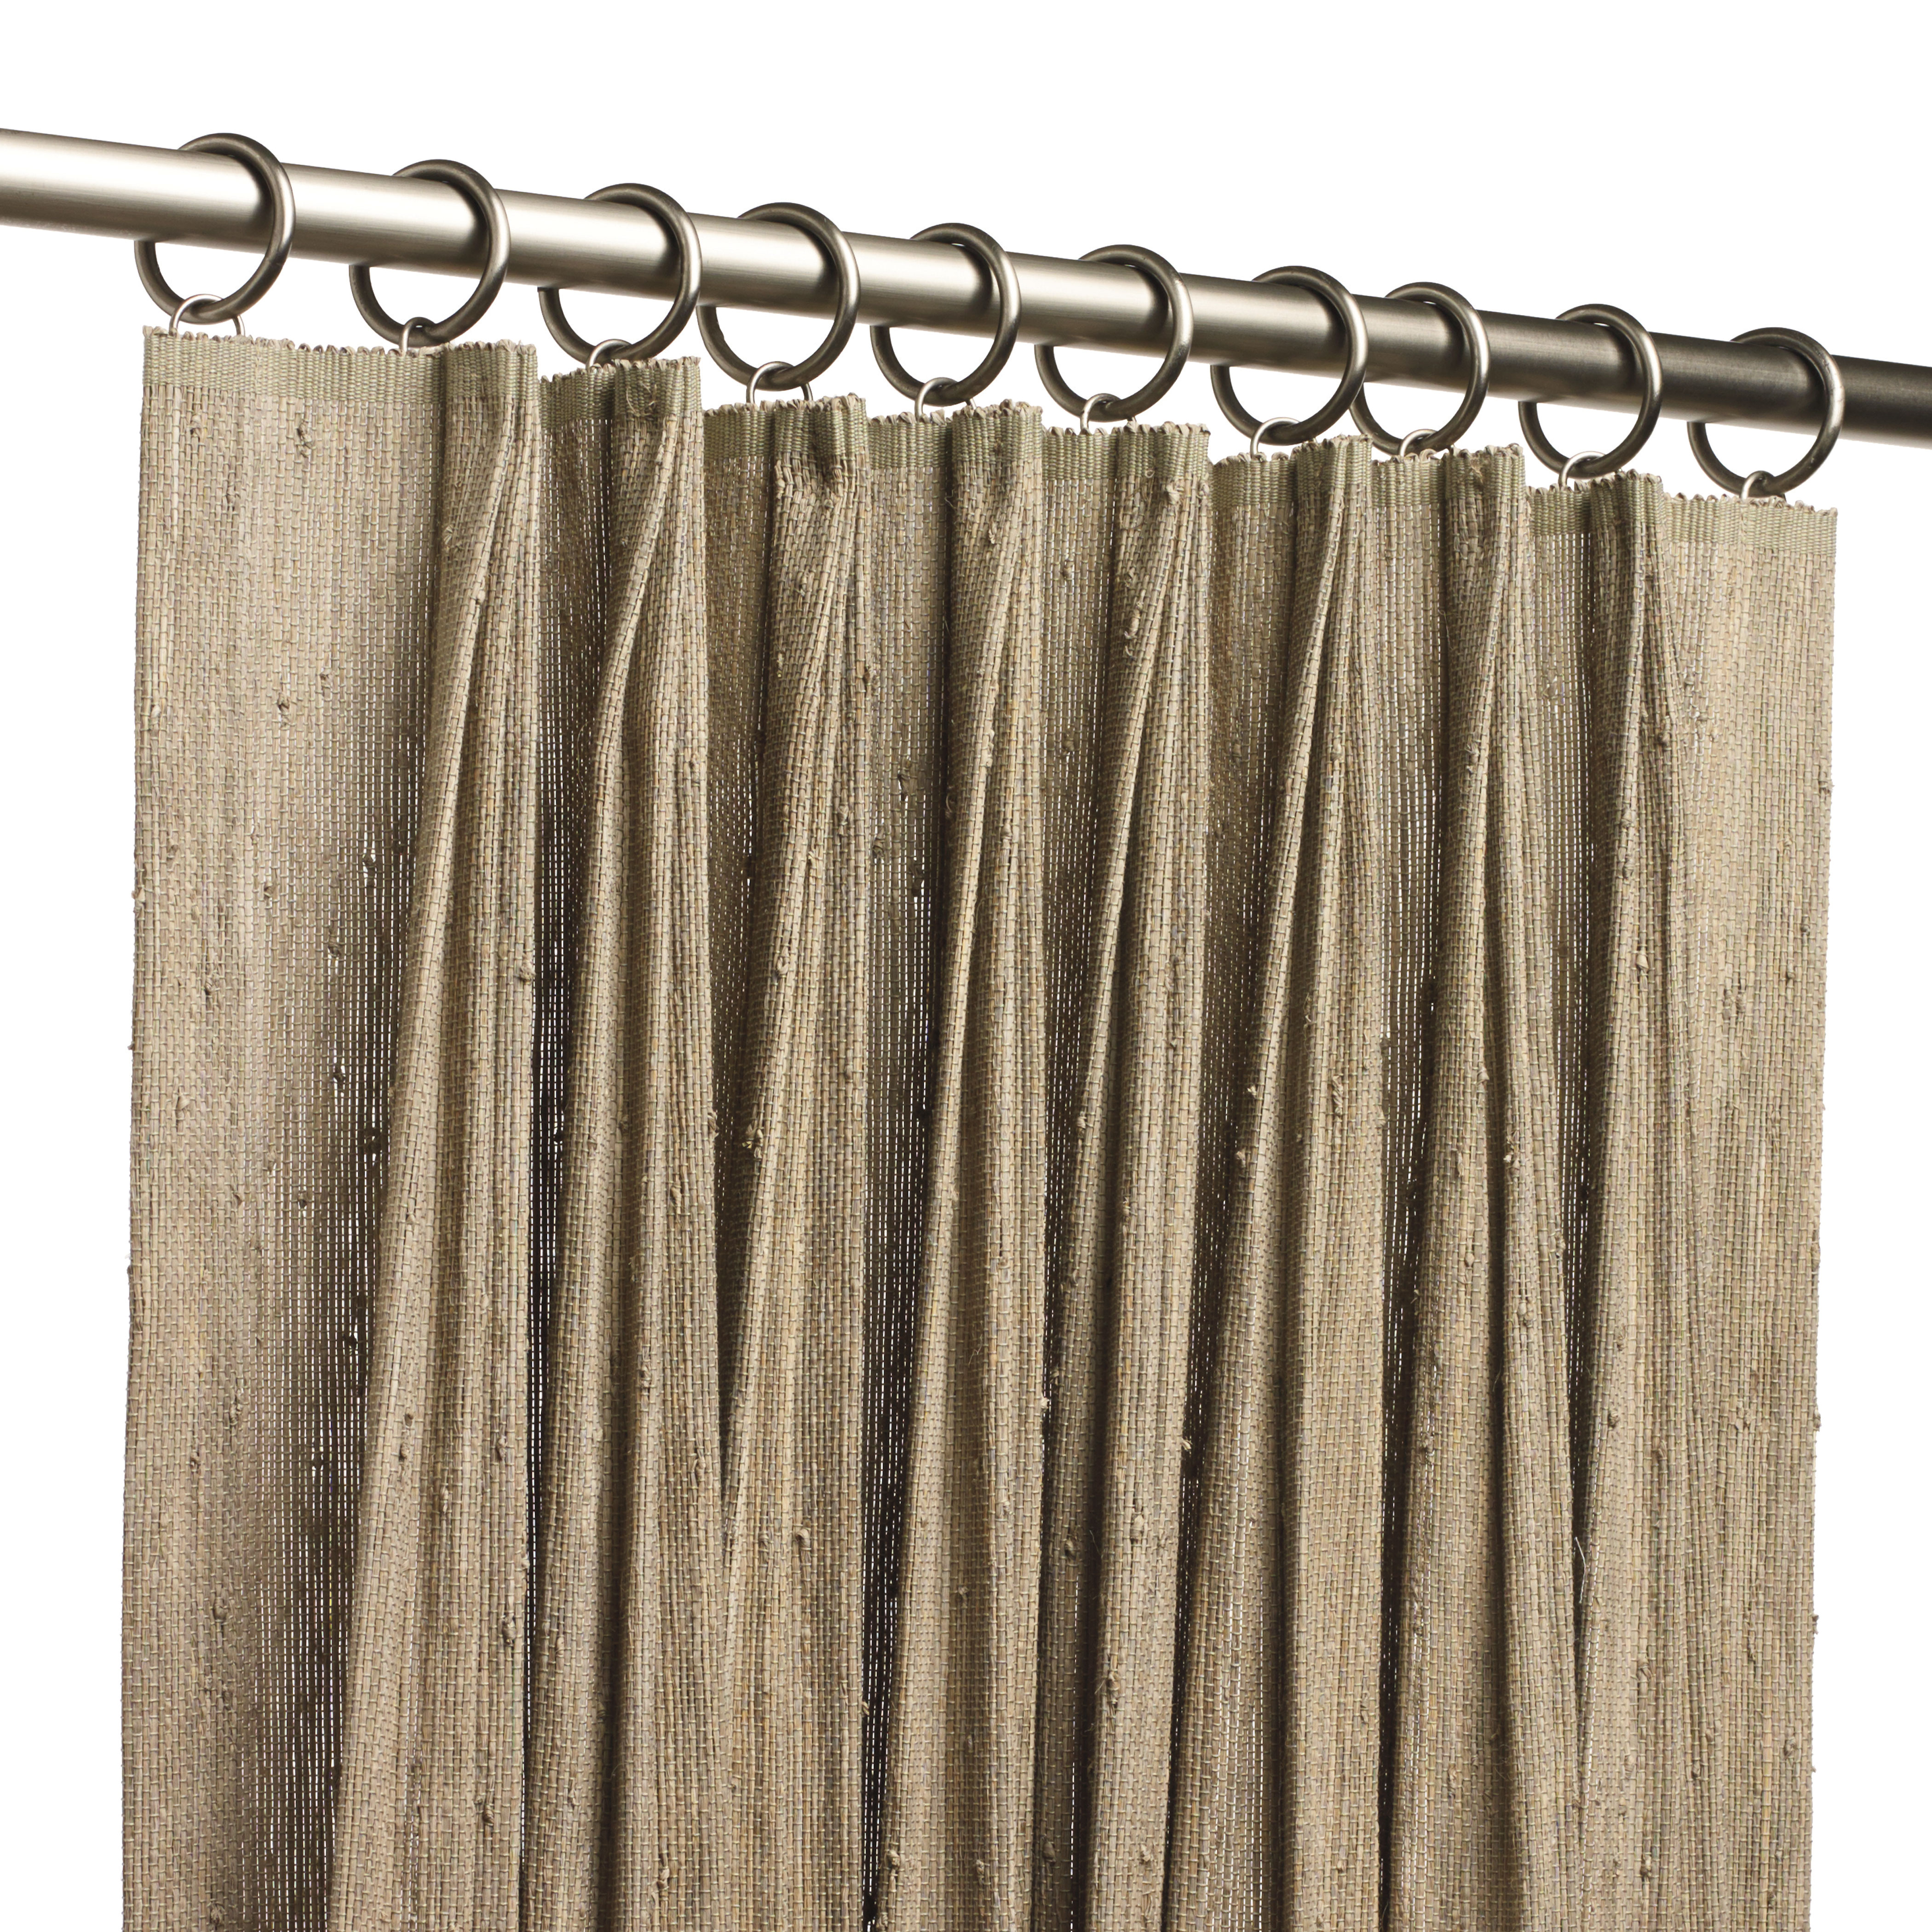 Natural Woven Drapery Hartmann Amp Forbes